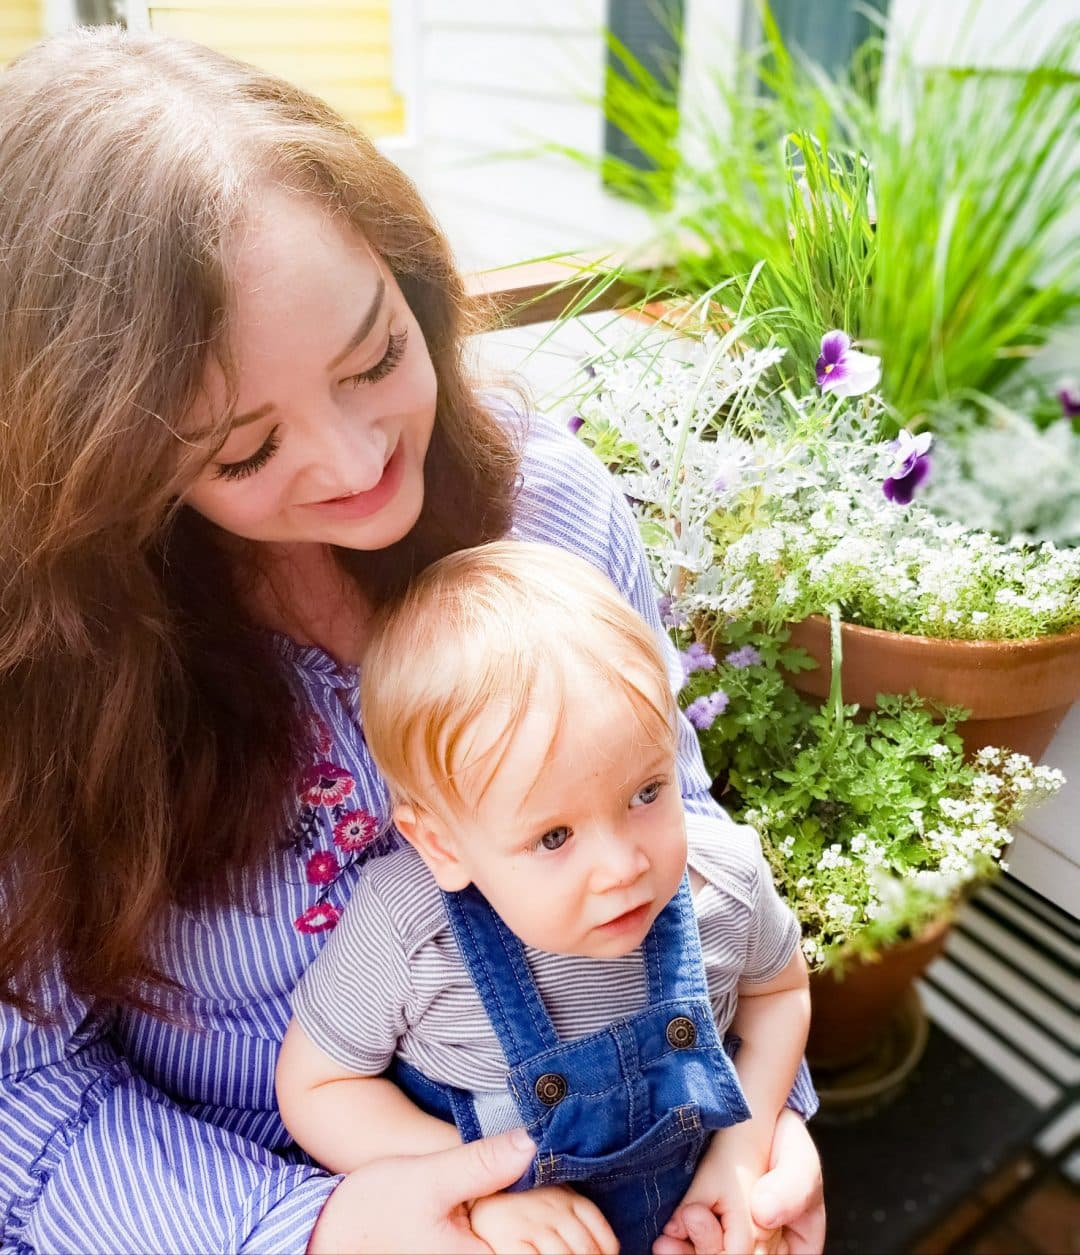 Image for About Me section showing Caitlyn holding a toddler with flowers in the background.